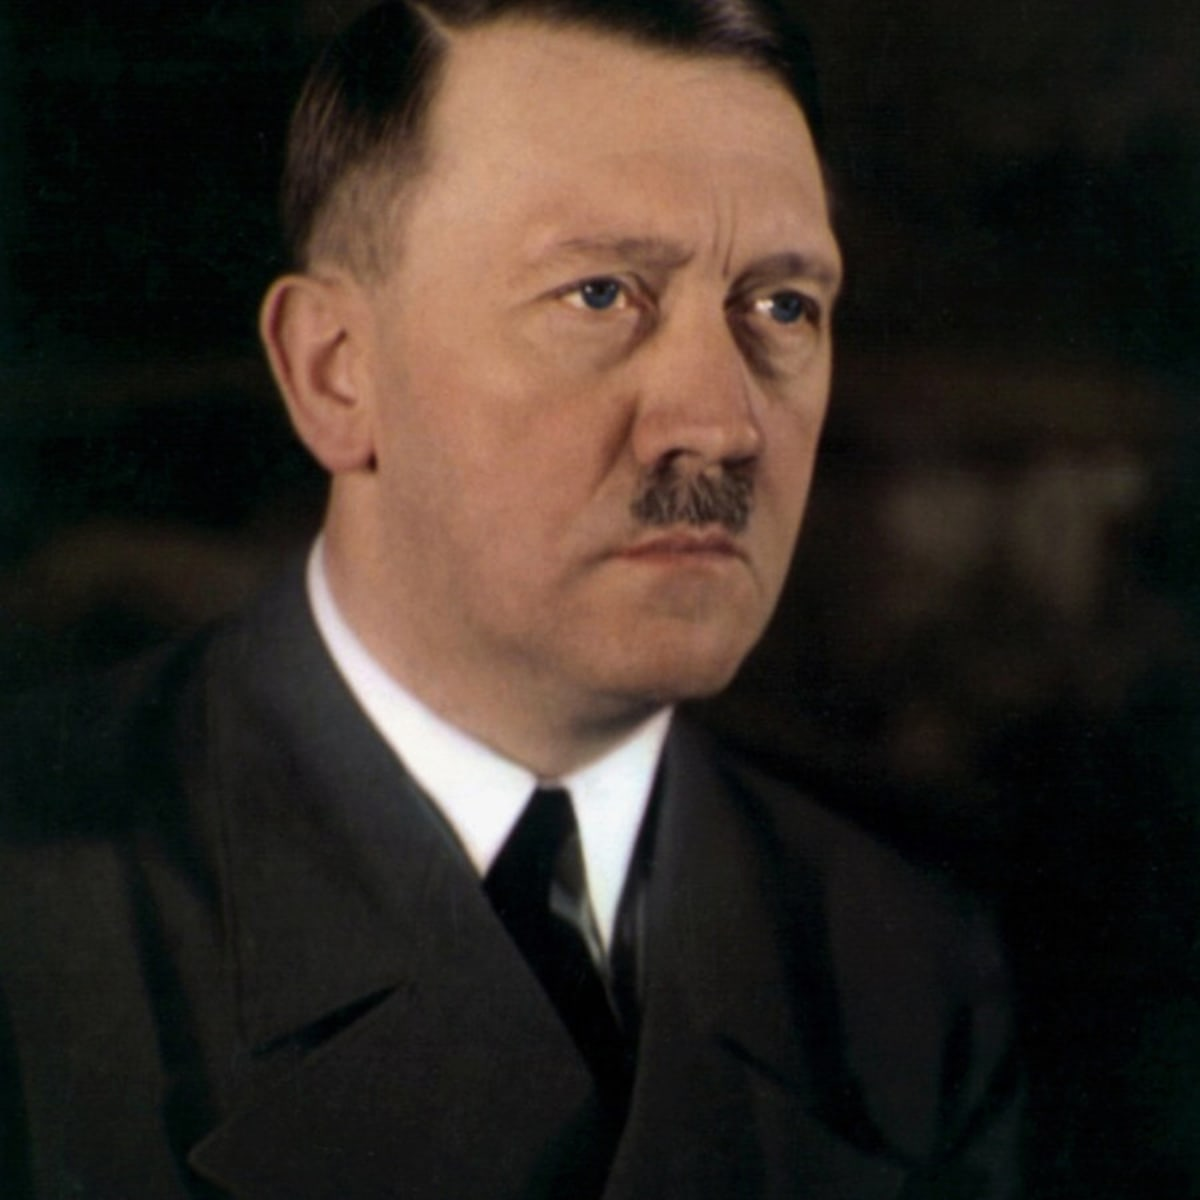 Study Suggests Adolf Hitler Had Jewish and African Ancestors - HISTORY